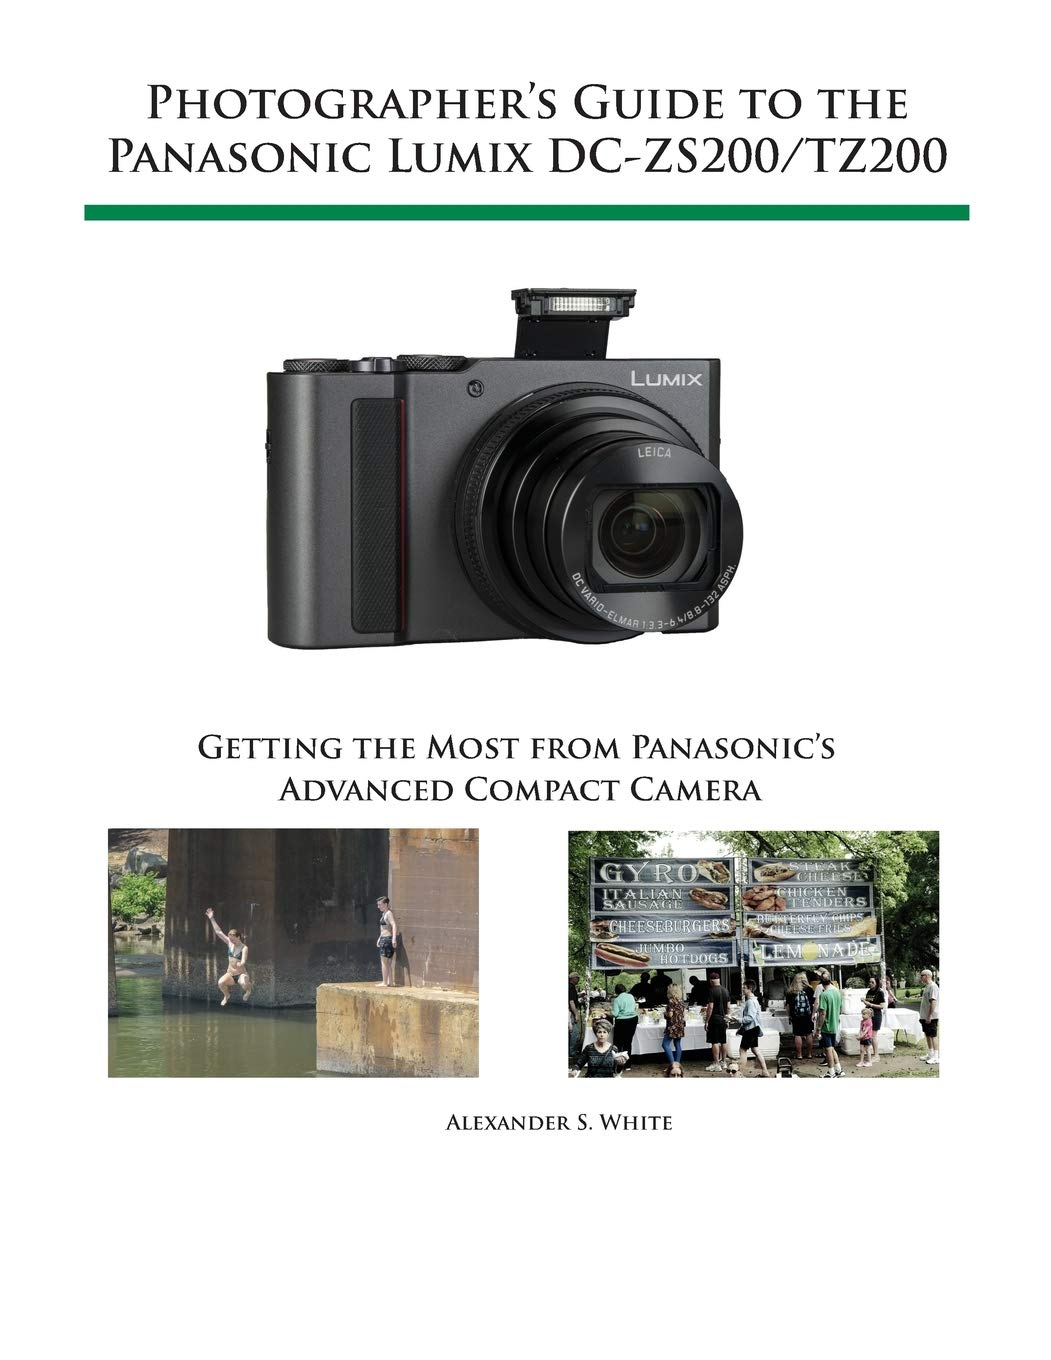 Image OfPhotographer's Guide To The Panasonic Lumix DC-ZS200/TZ200: Getting The Most From Panasonic's Advanced Compact Camera